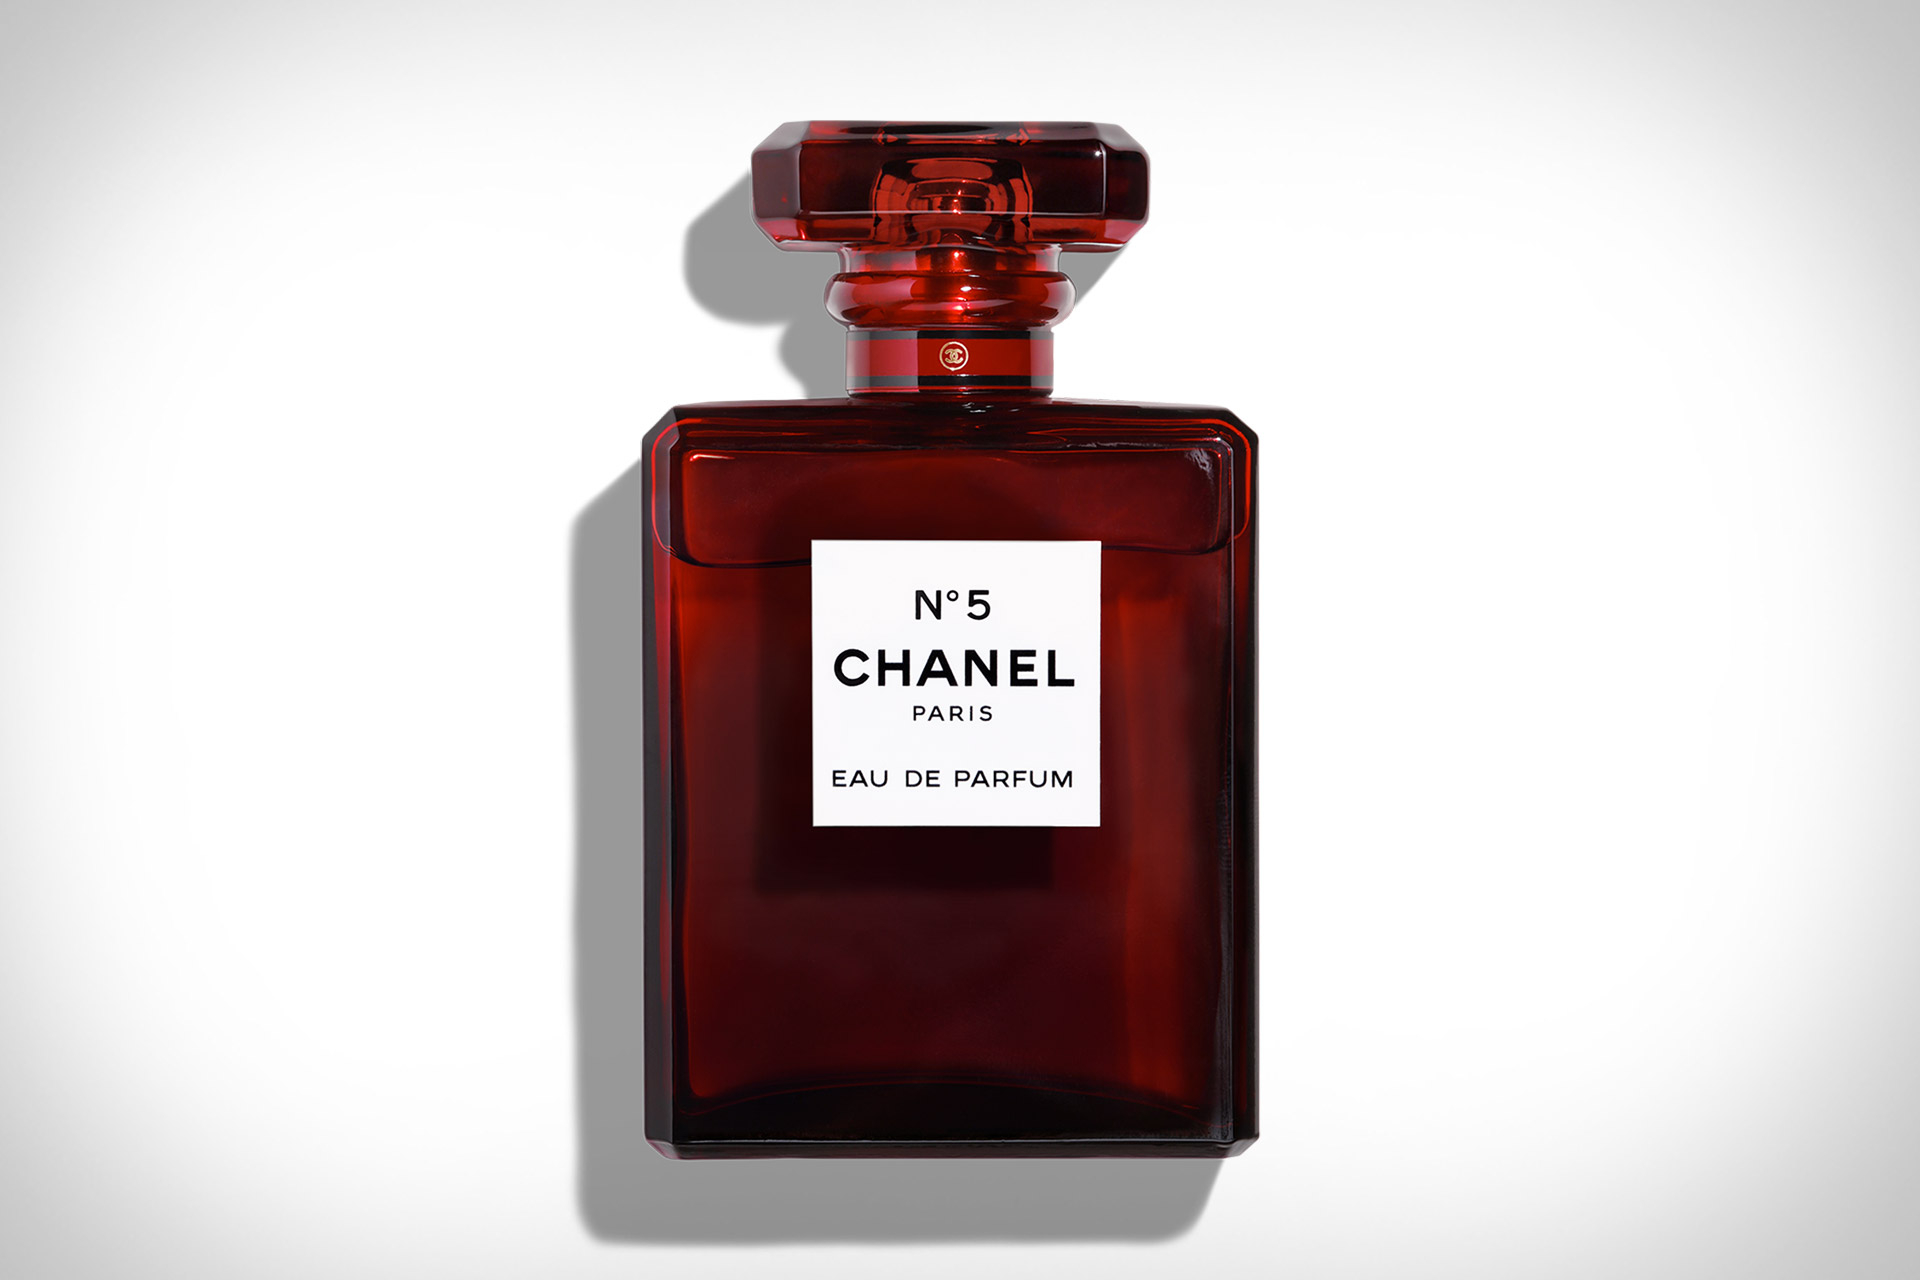 Chanel No 5 Limited Edition Perfume